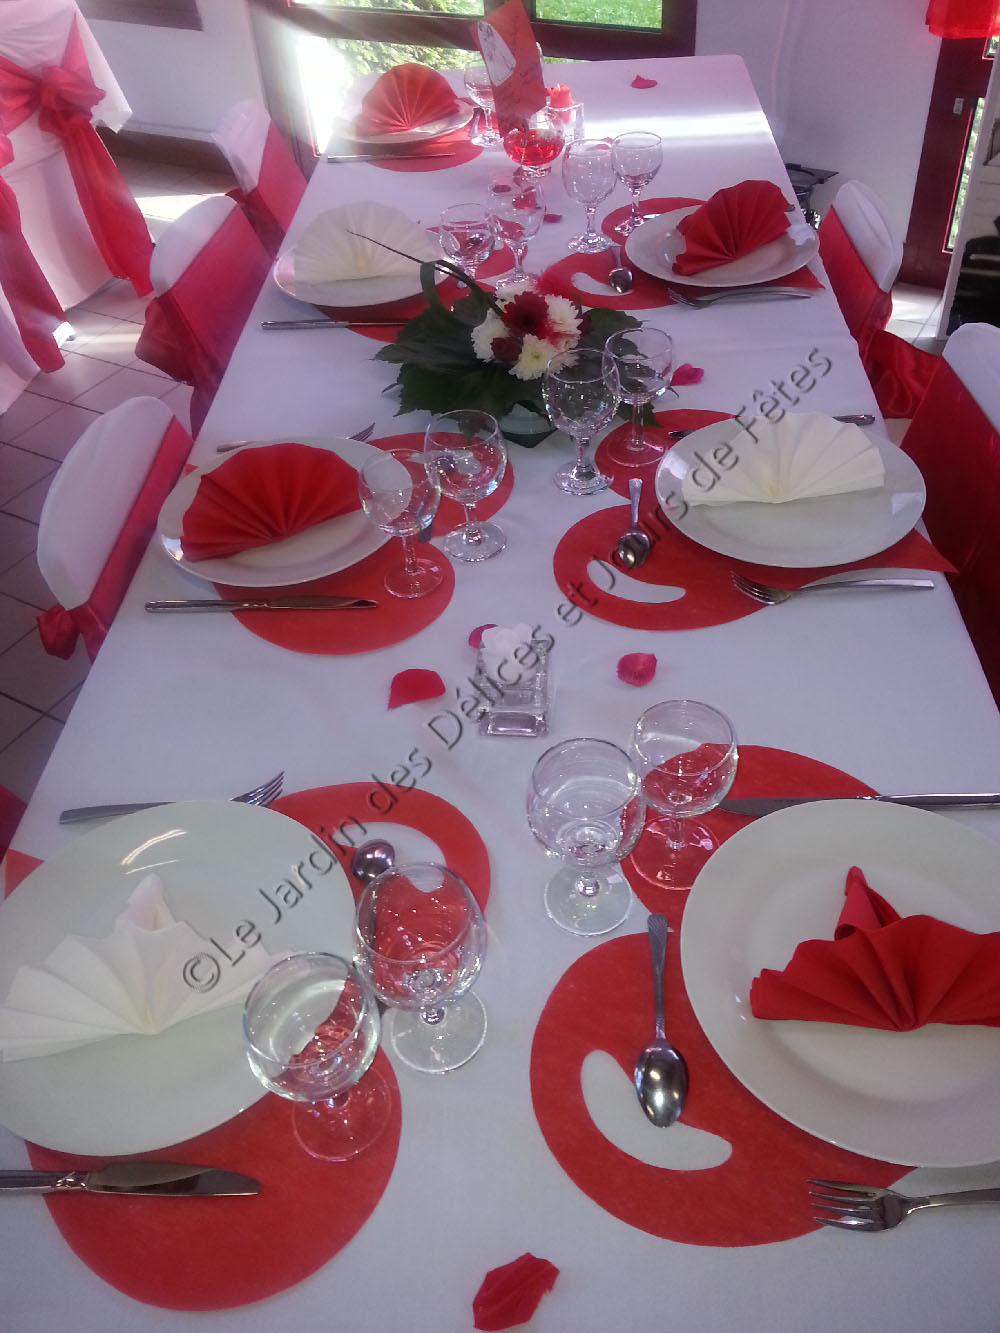 decoration de table pour mariage rouge et blanc le mariage. Black Bedroom Furniture Sets. Home Design Ideas